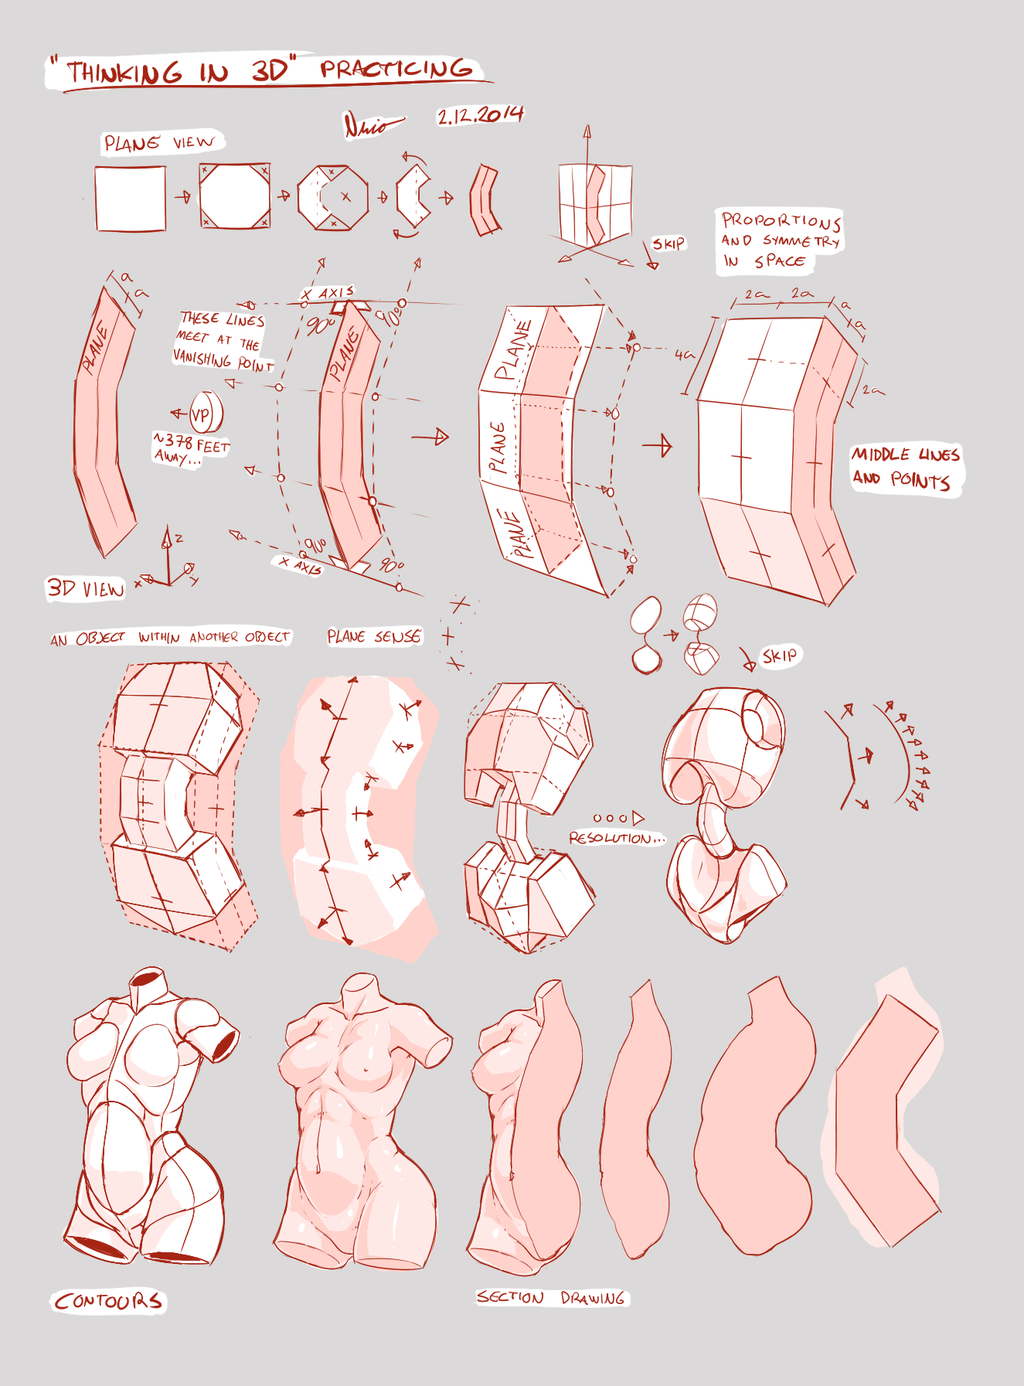 Pin By Ody On Pinterest Anatomy Drawings And Tutorials